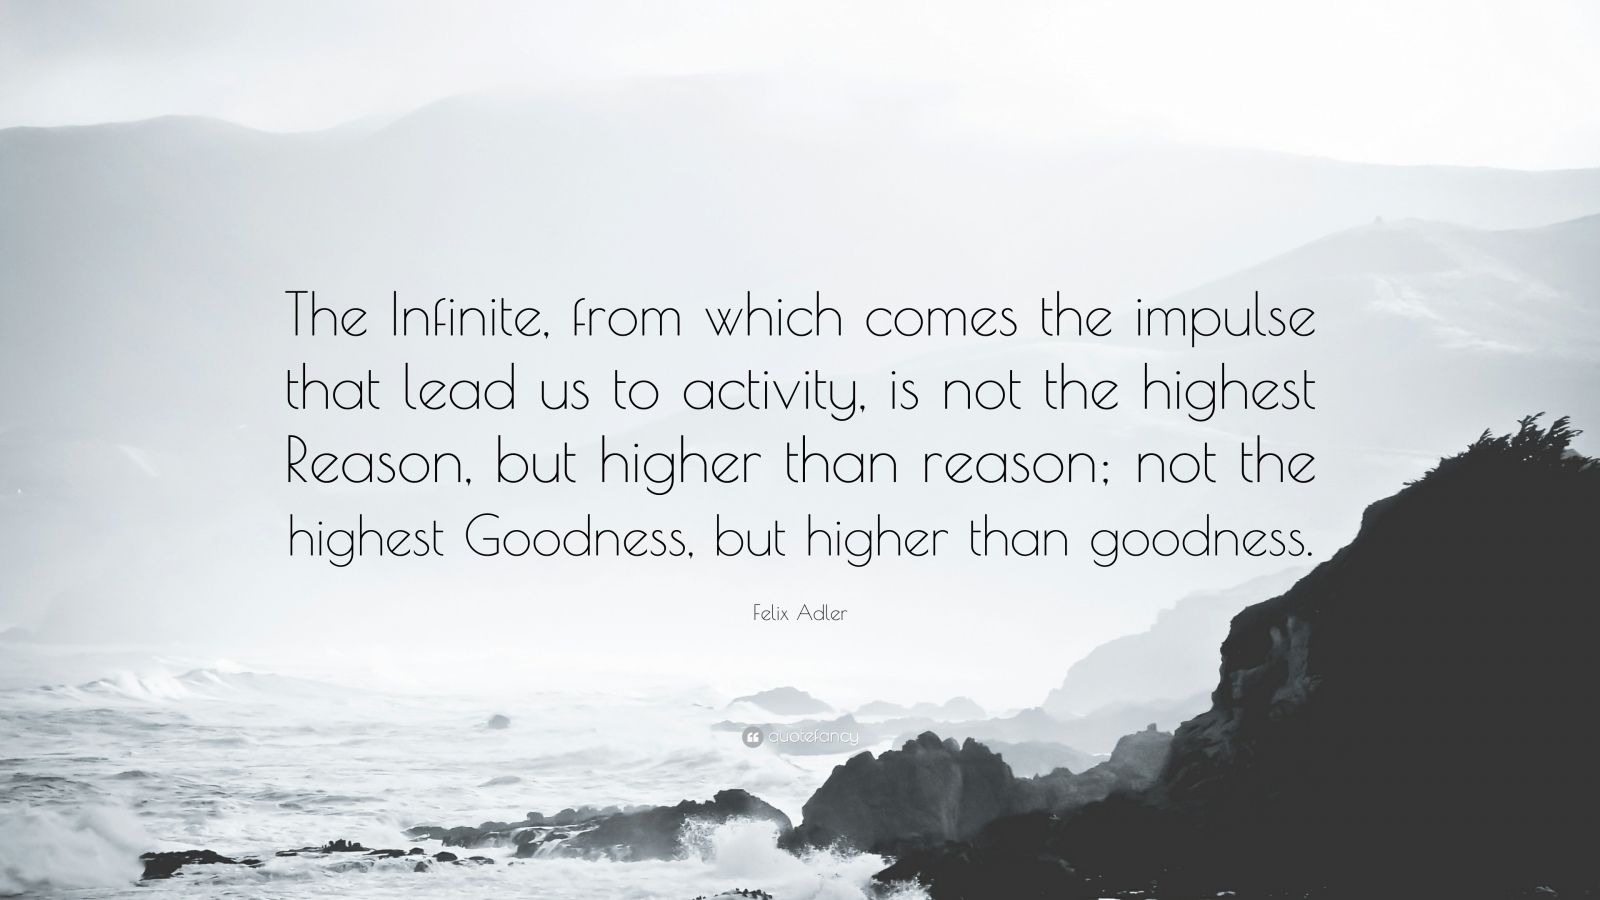 """Felix Adler Quote: """"The Infinite, from which comes the impulse that lead us to activity, is not the highest Reason, but higher than reason; not the highest Goodness, but higher than goodness."""""""